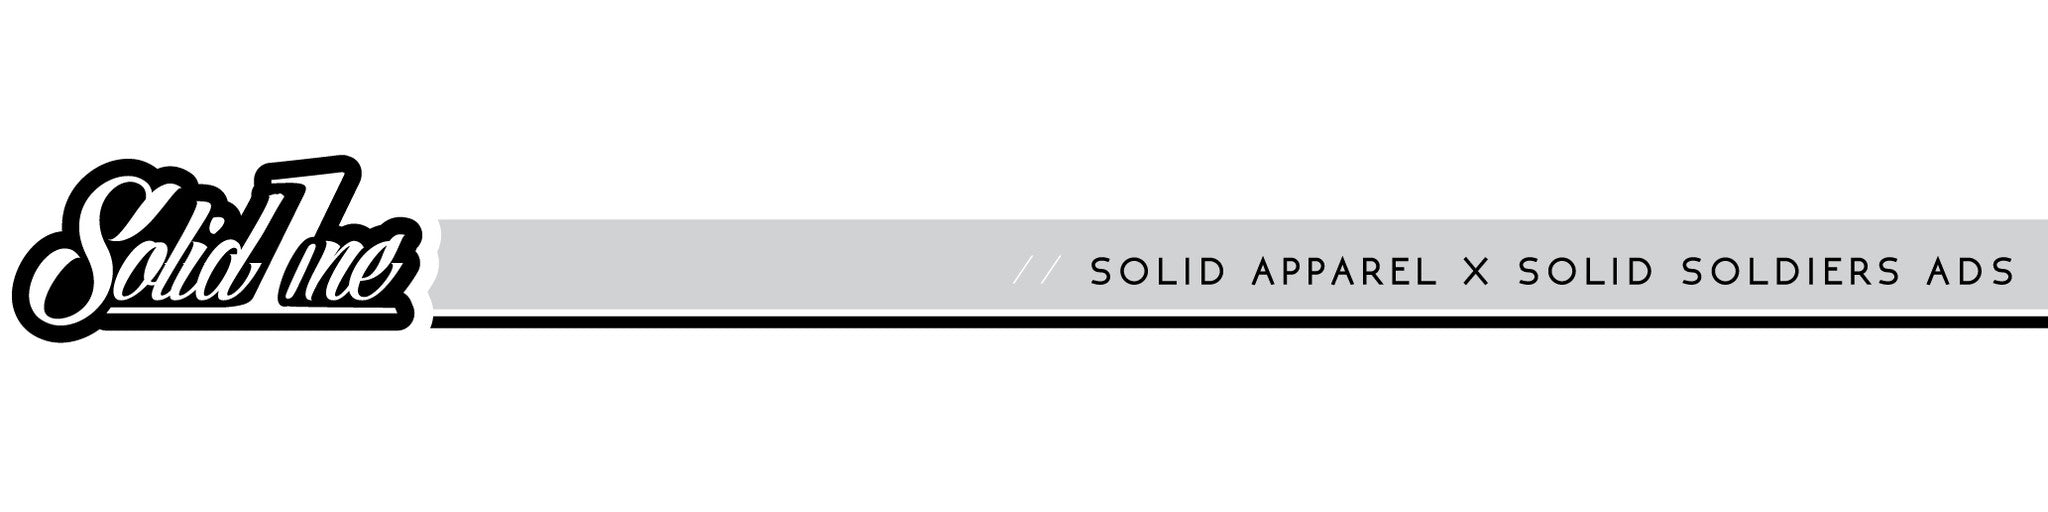 Solid1ne About - #Timmulvey #music #SolidApparel #SolidSoldiers #LoopStationInnovation